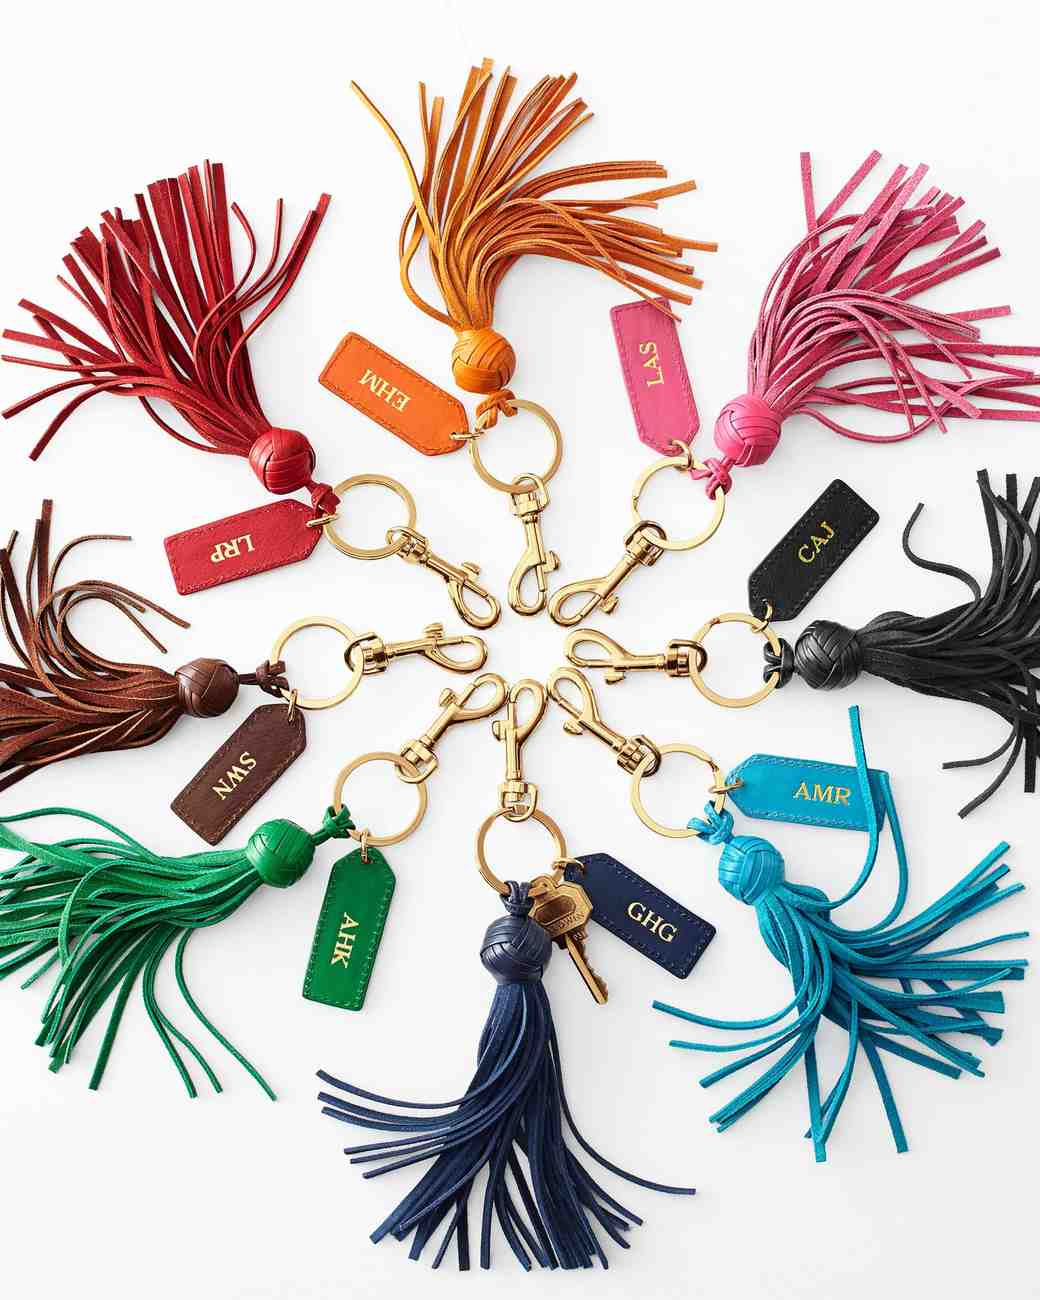 bridal-party-gifts-monogram-key-chain-tassle-0416.jpg